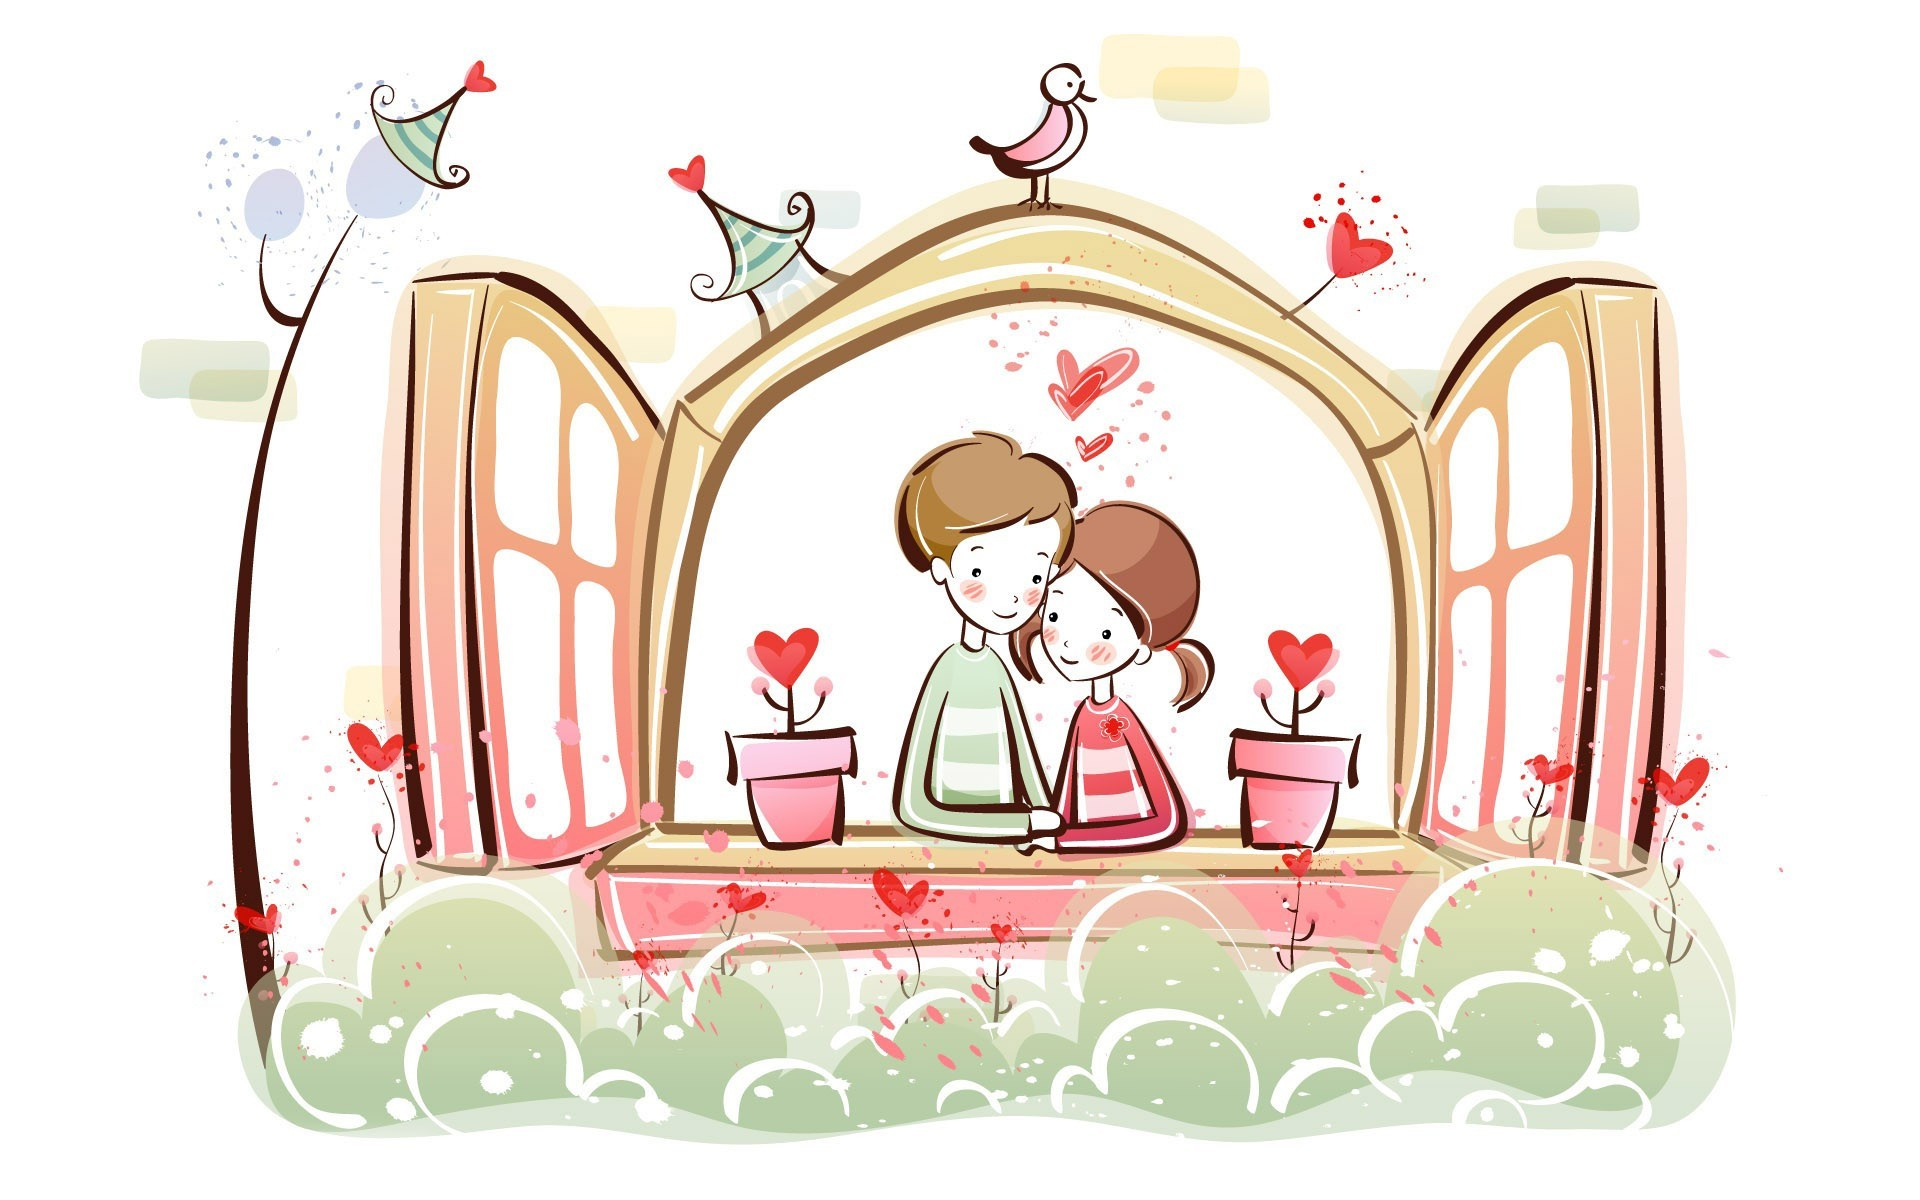 cartoon Love Wallpaper - Wallpaper, High Definition, High Quality, Widescreen